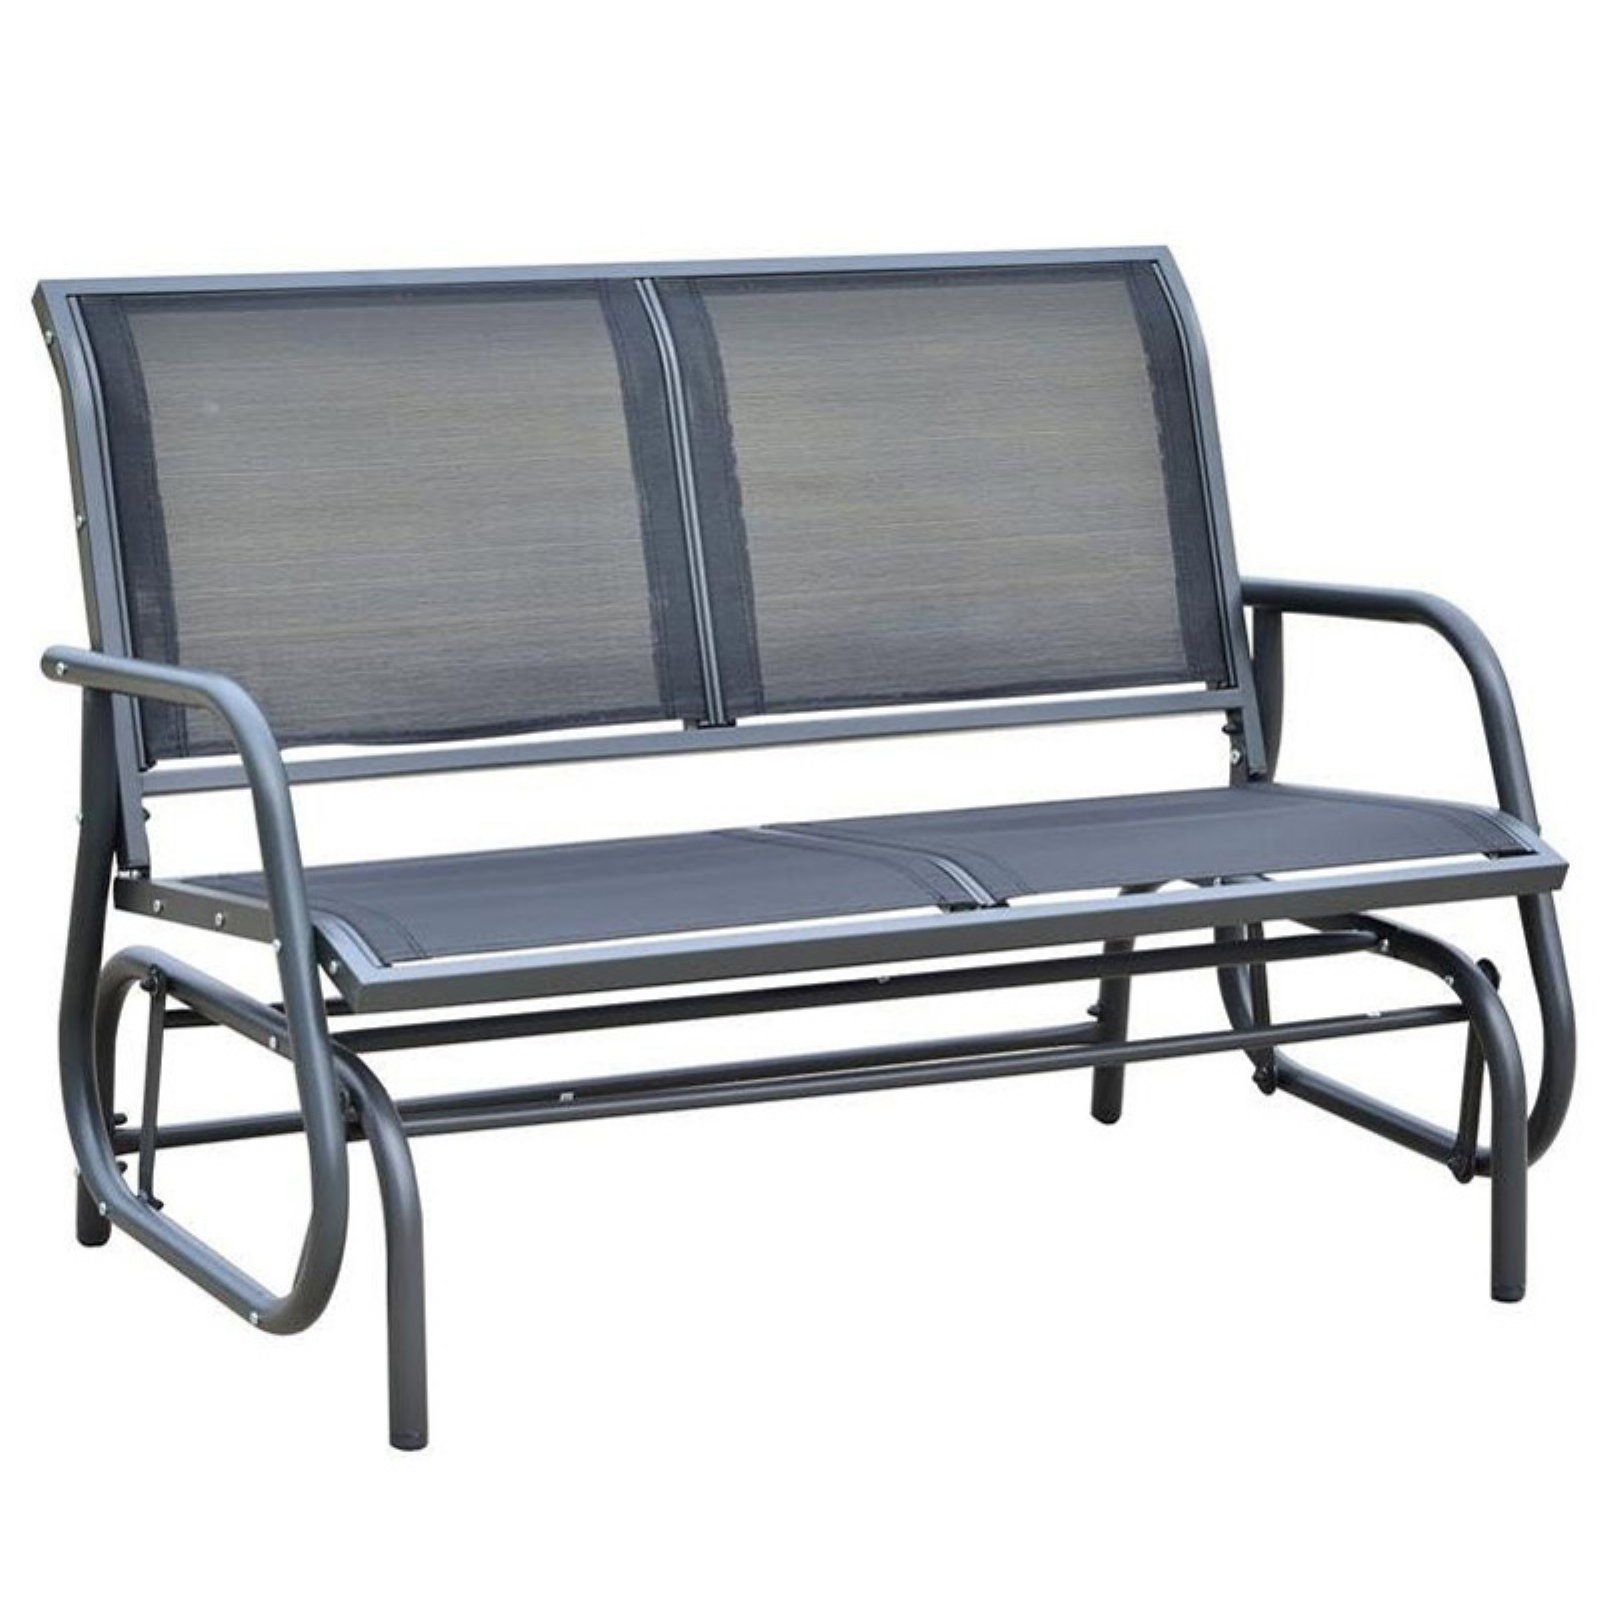 Outsunny 48 in. Black Steel Outdoor Glider Bench